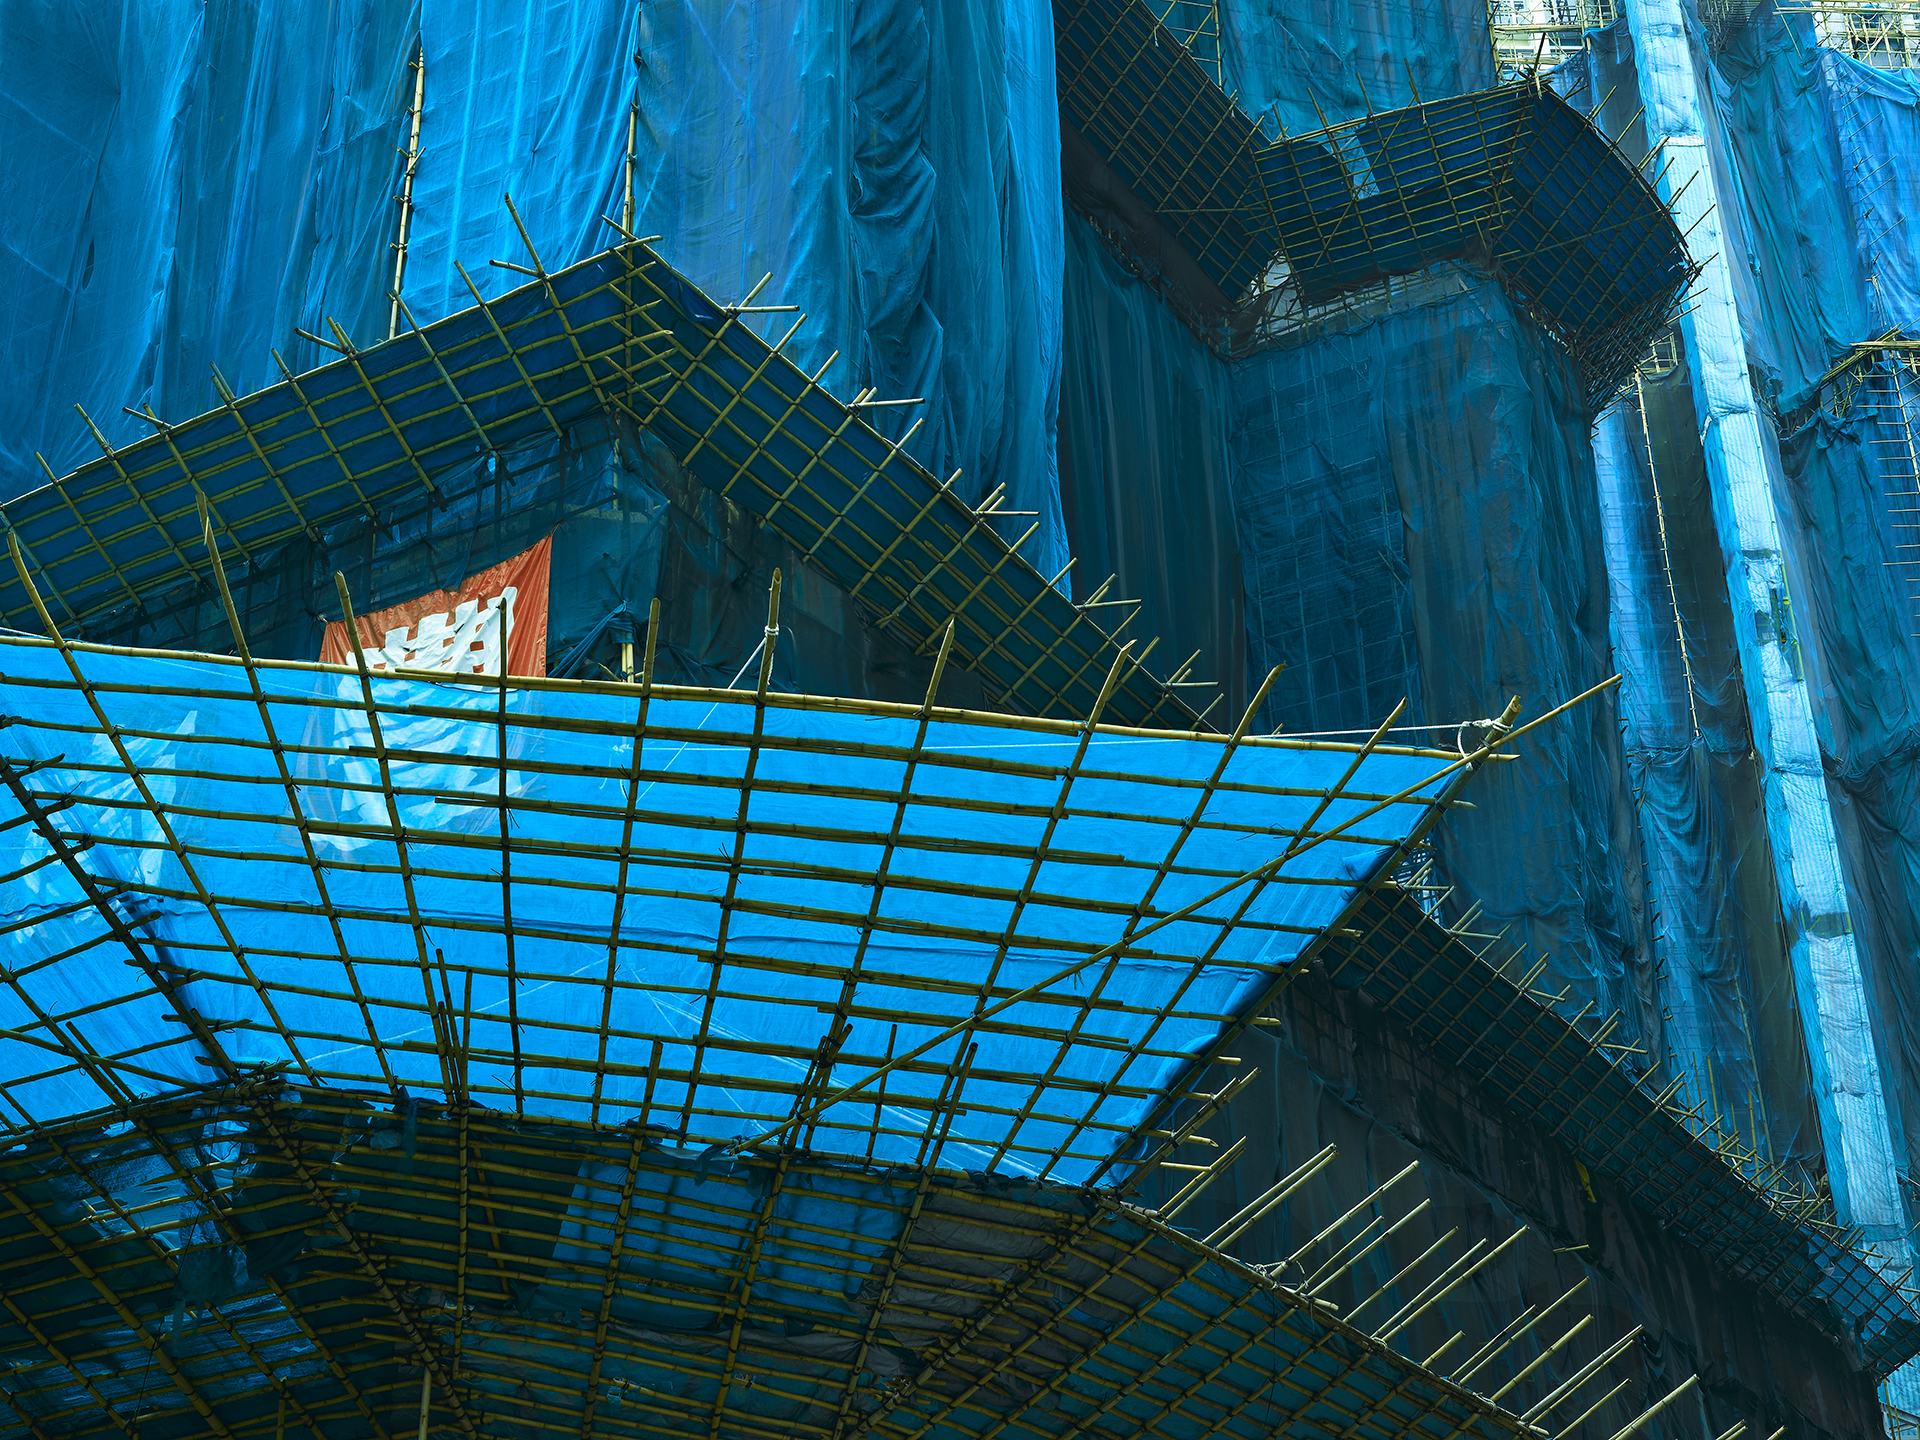 Blue Cocoon #20, Hong Kong - 2007